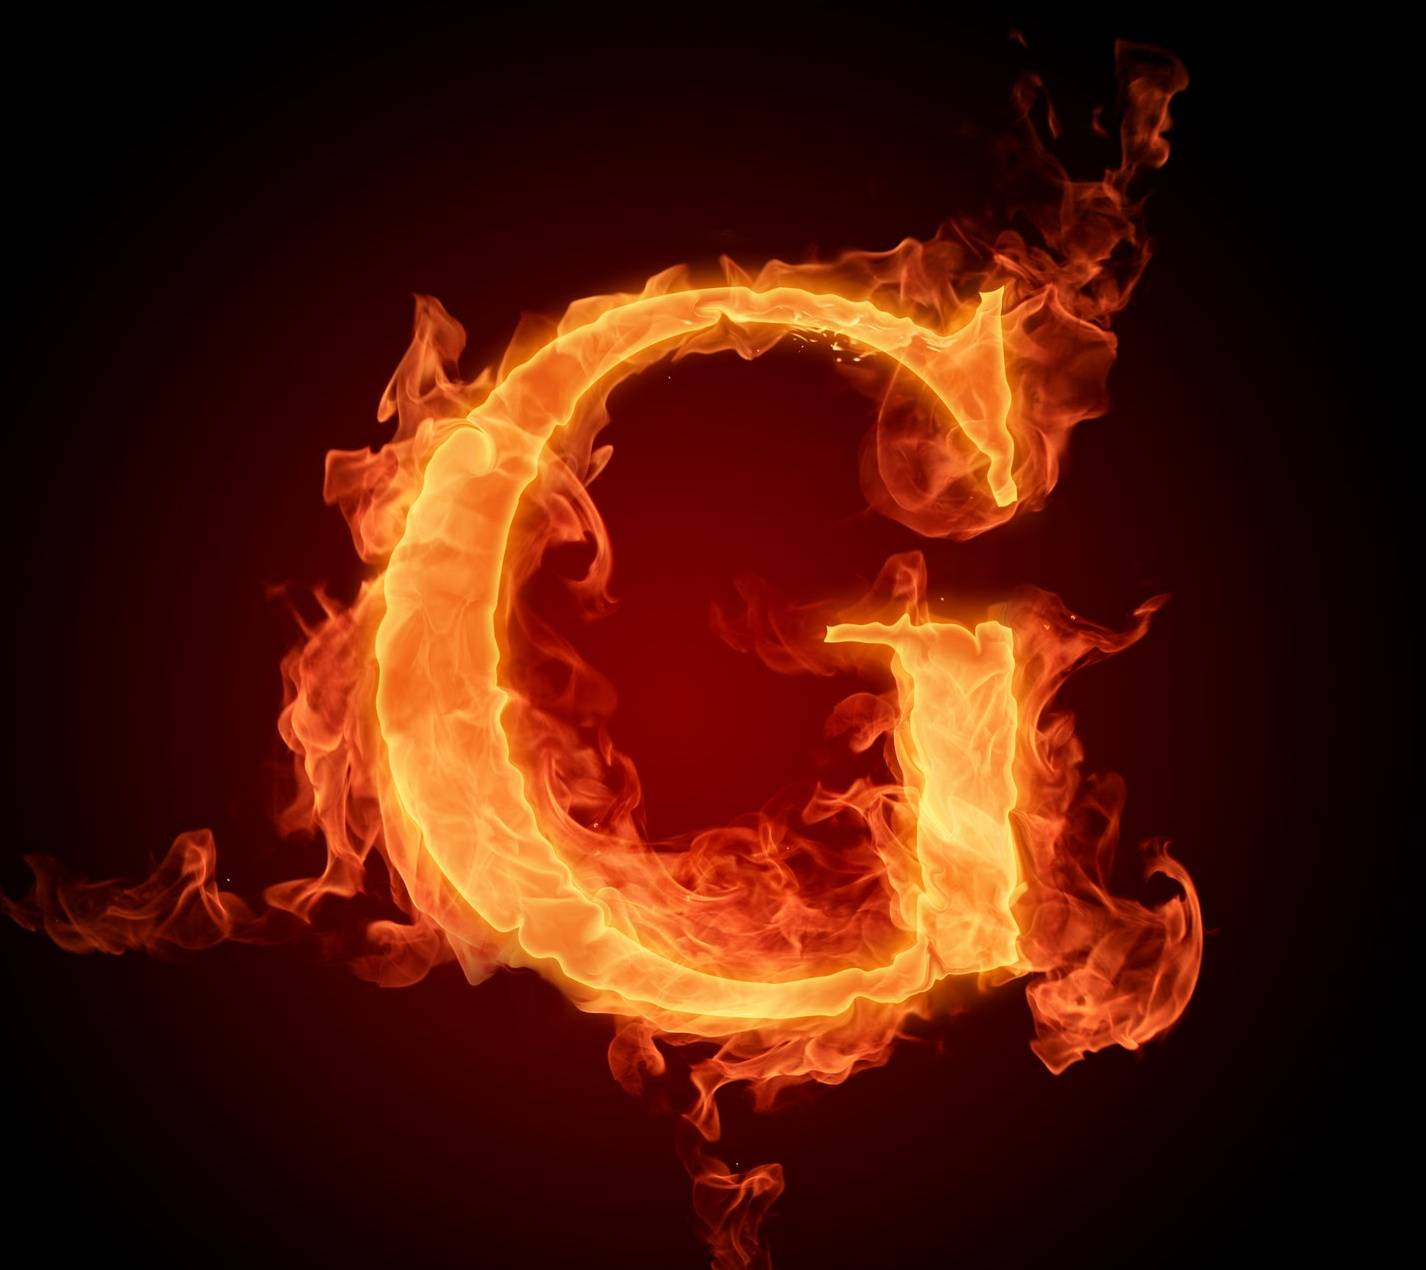 Letter G In Fire Hd Wallpaper By Mrlazy Bf Free On Zedge